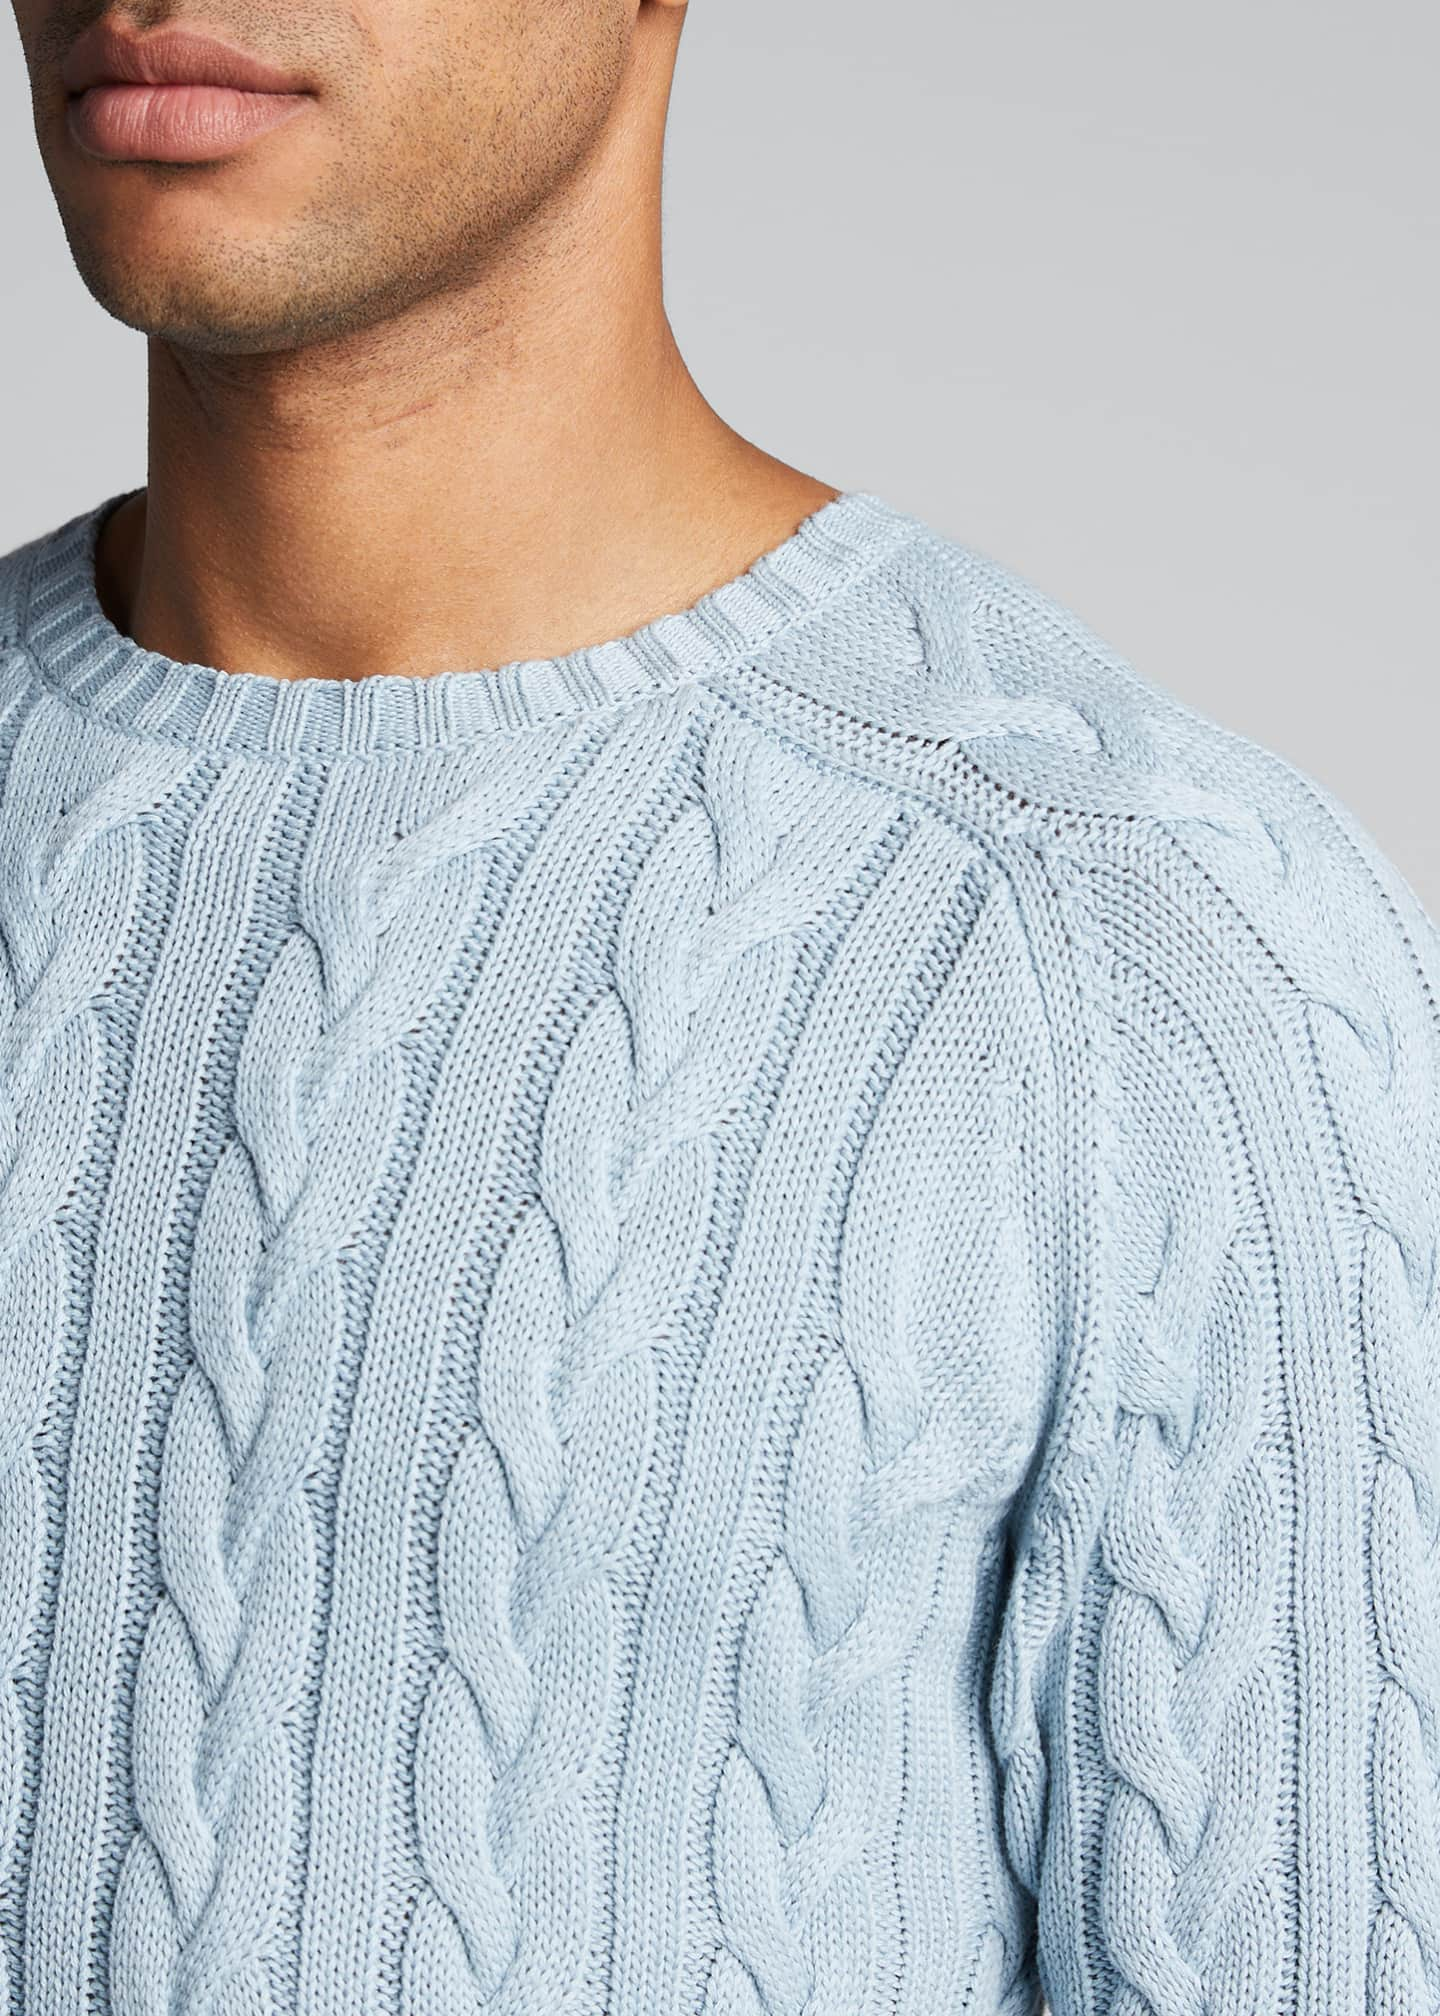 Image 4 of 4: Men's Cable-Knit Crewneck Sweater